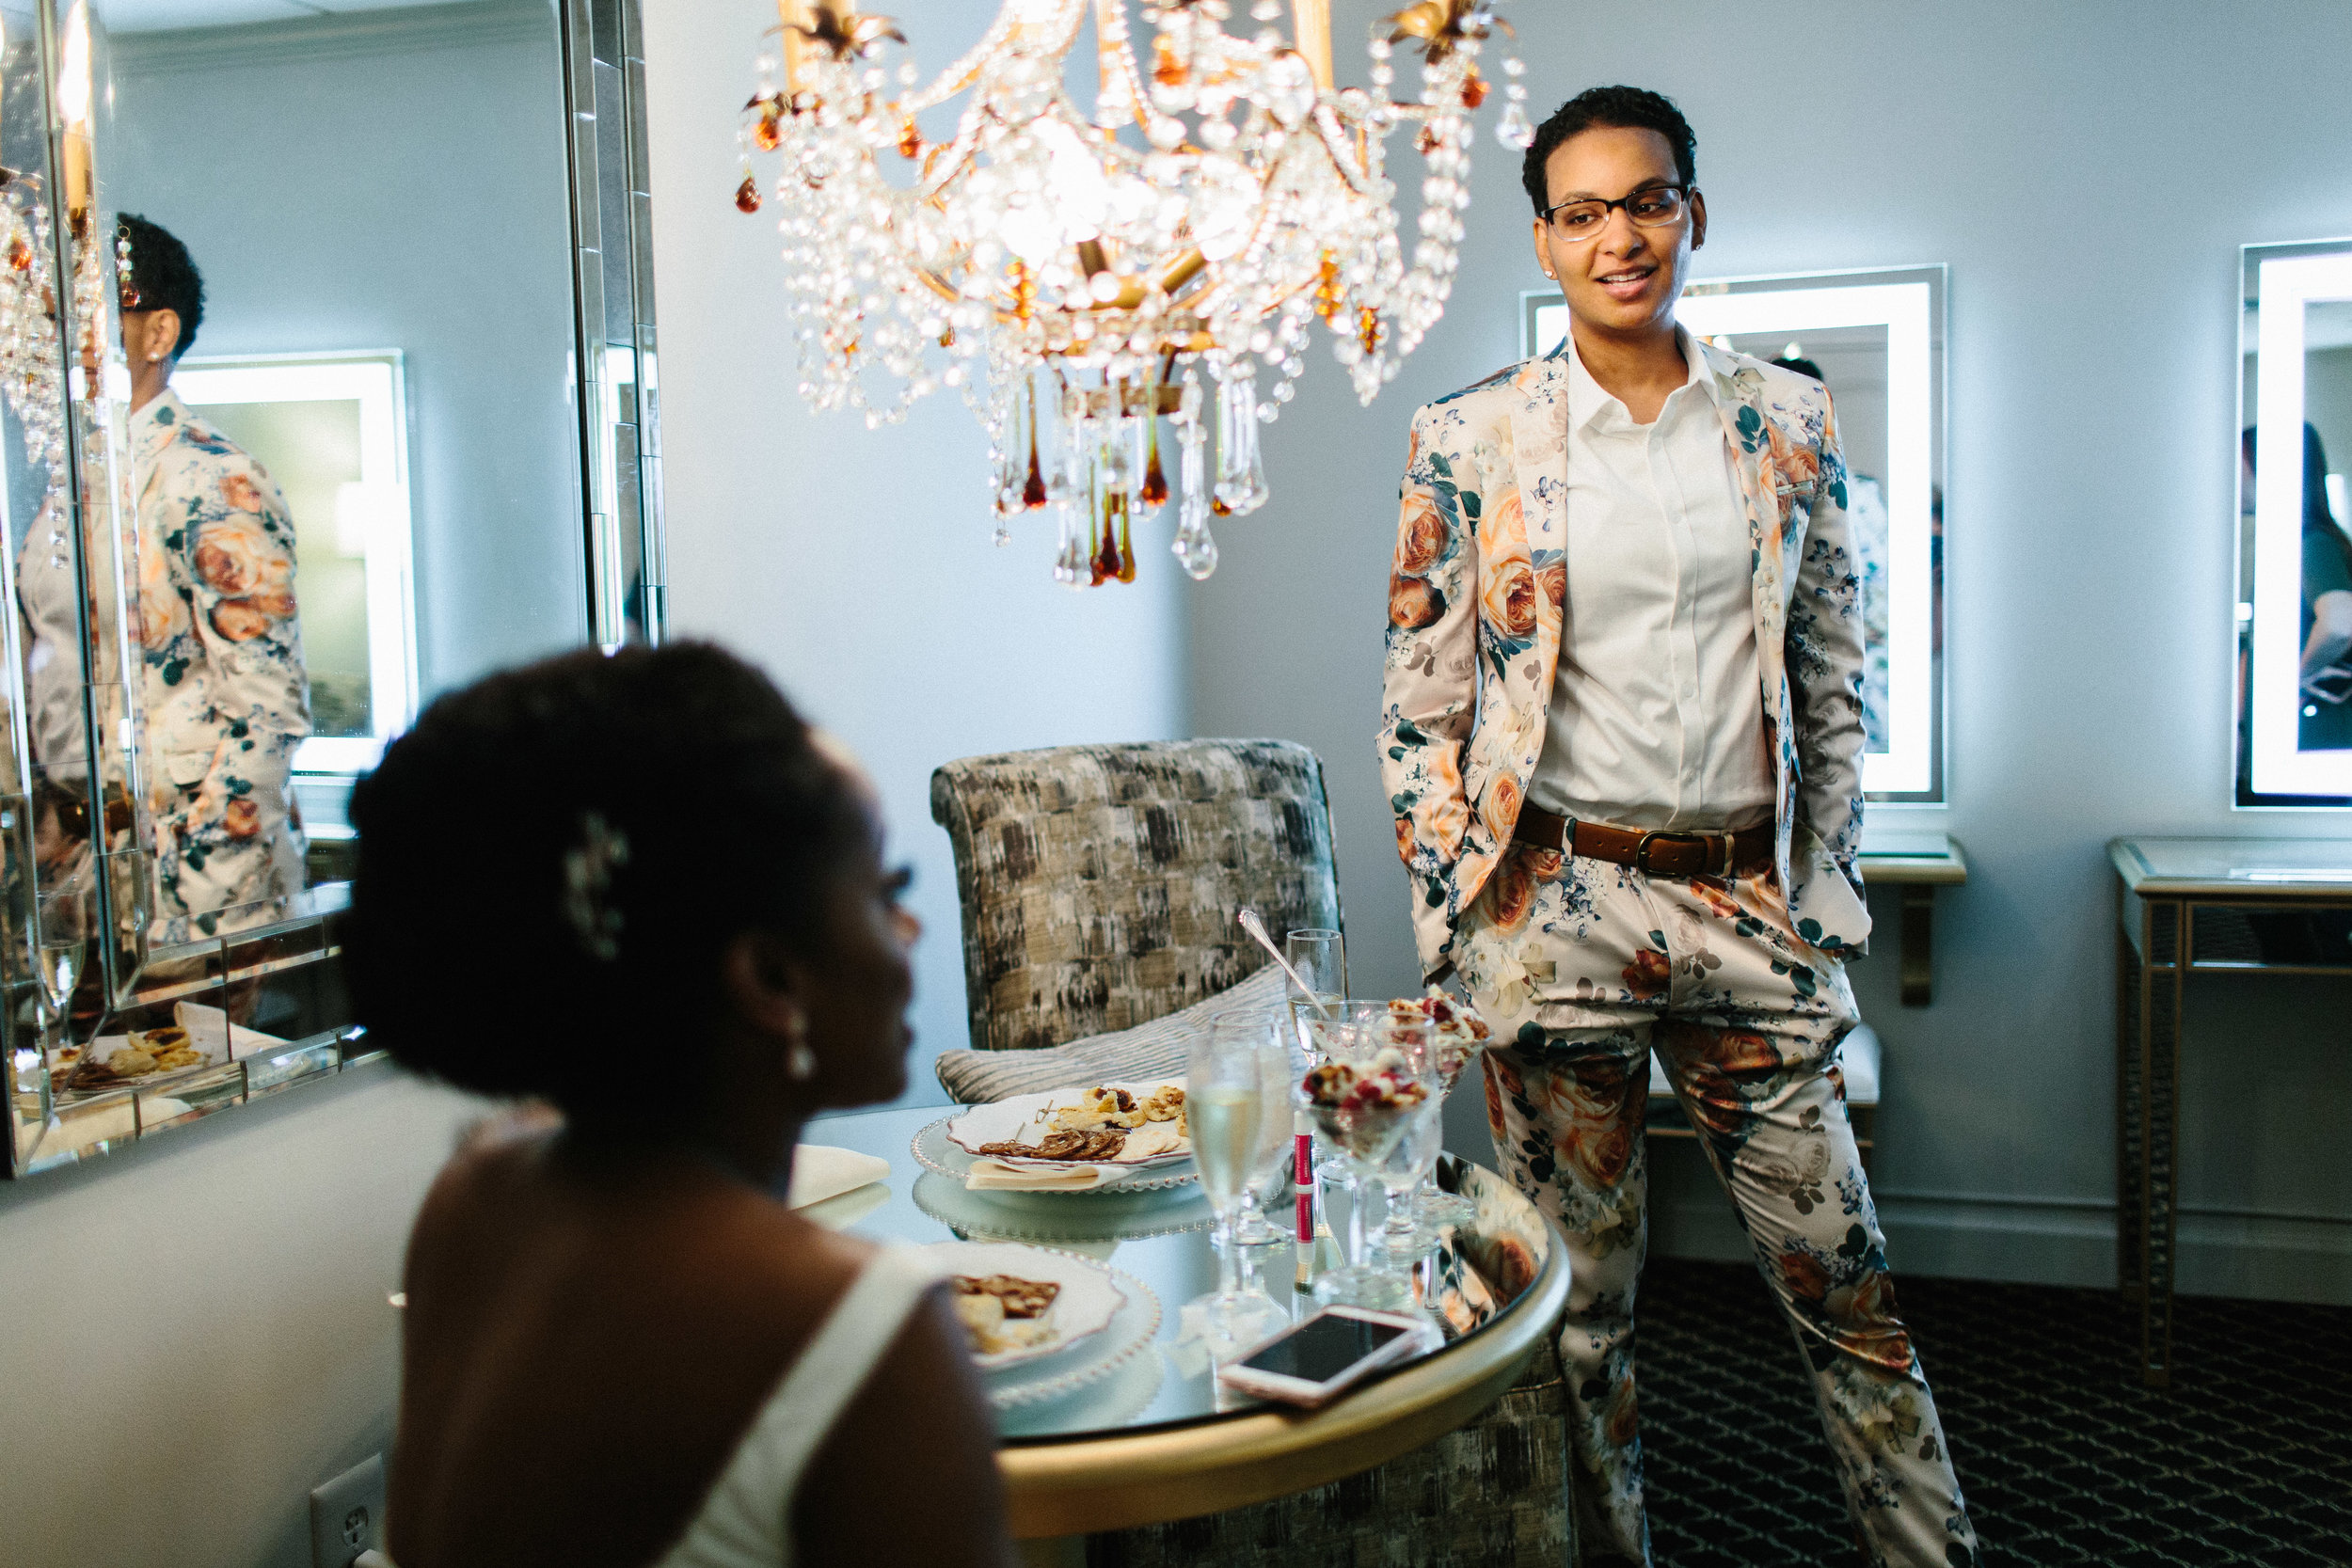 the_atrium_wedding_atlanta_norcross_lifestyle_photographers_lgbtq_1218.jpg